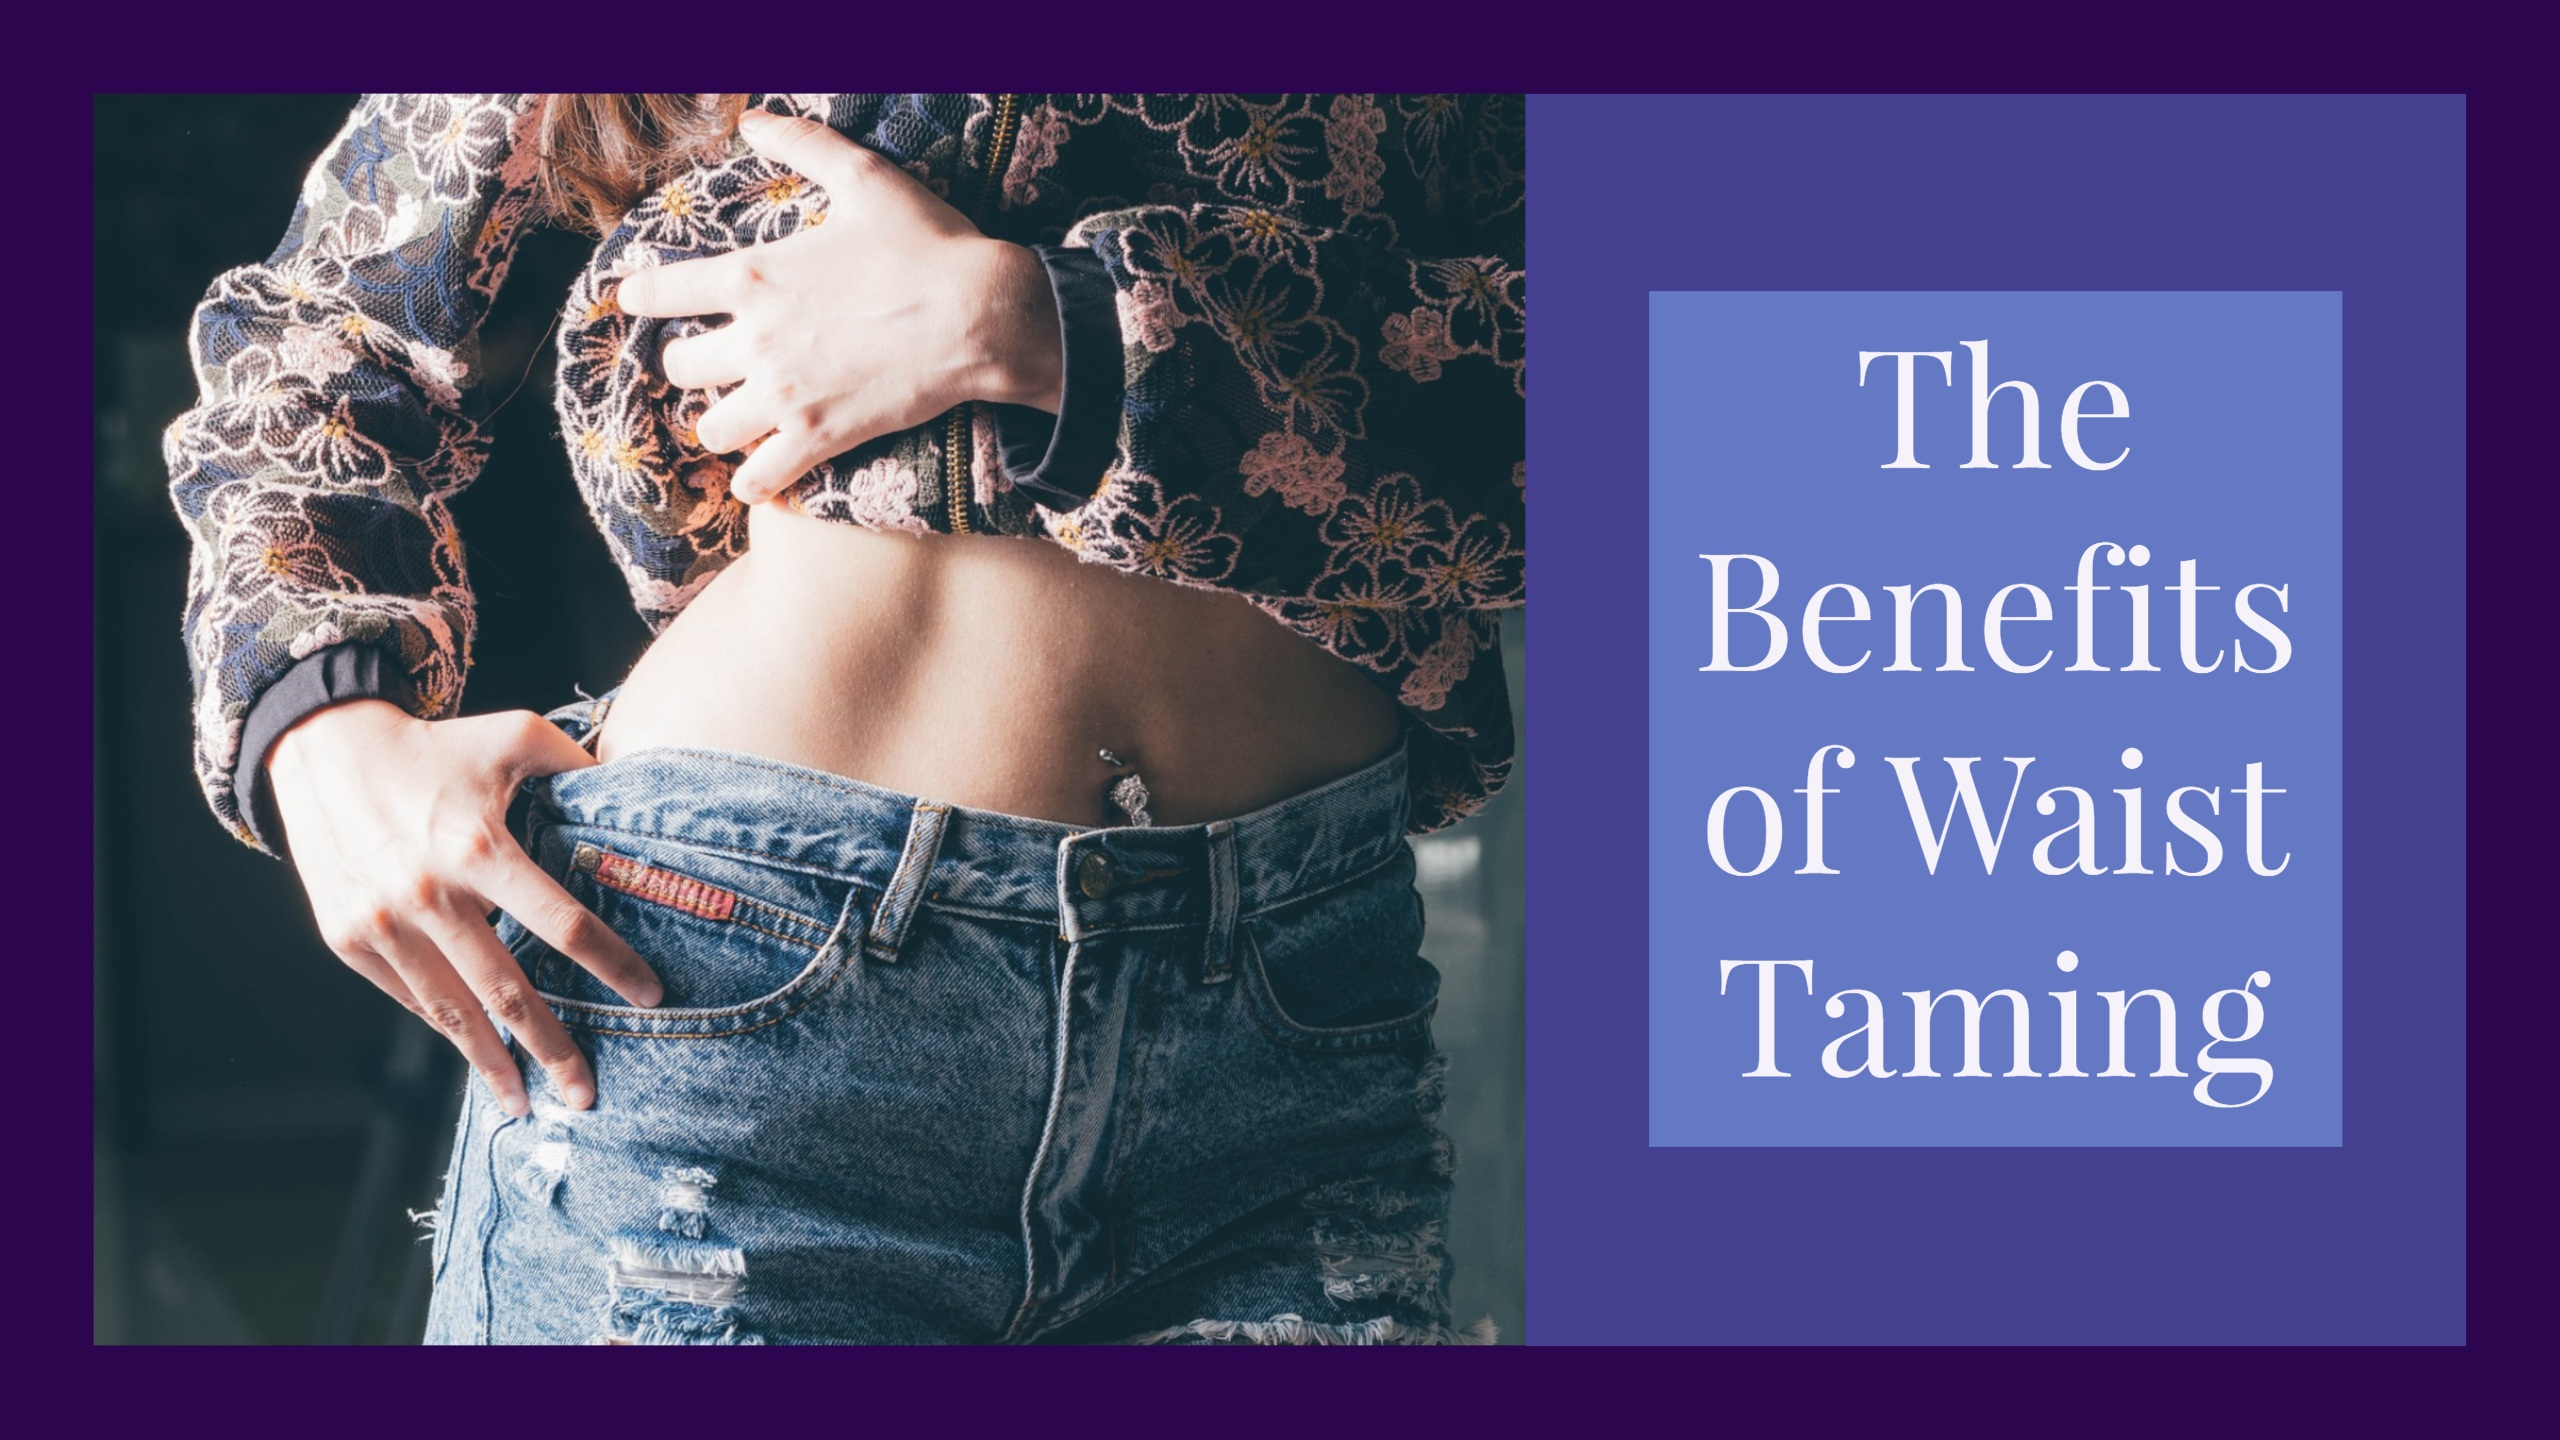 The Benefits of Waist Taming